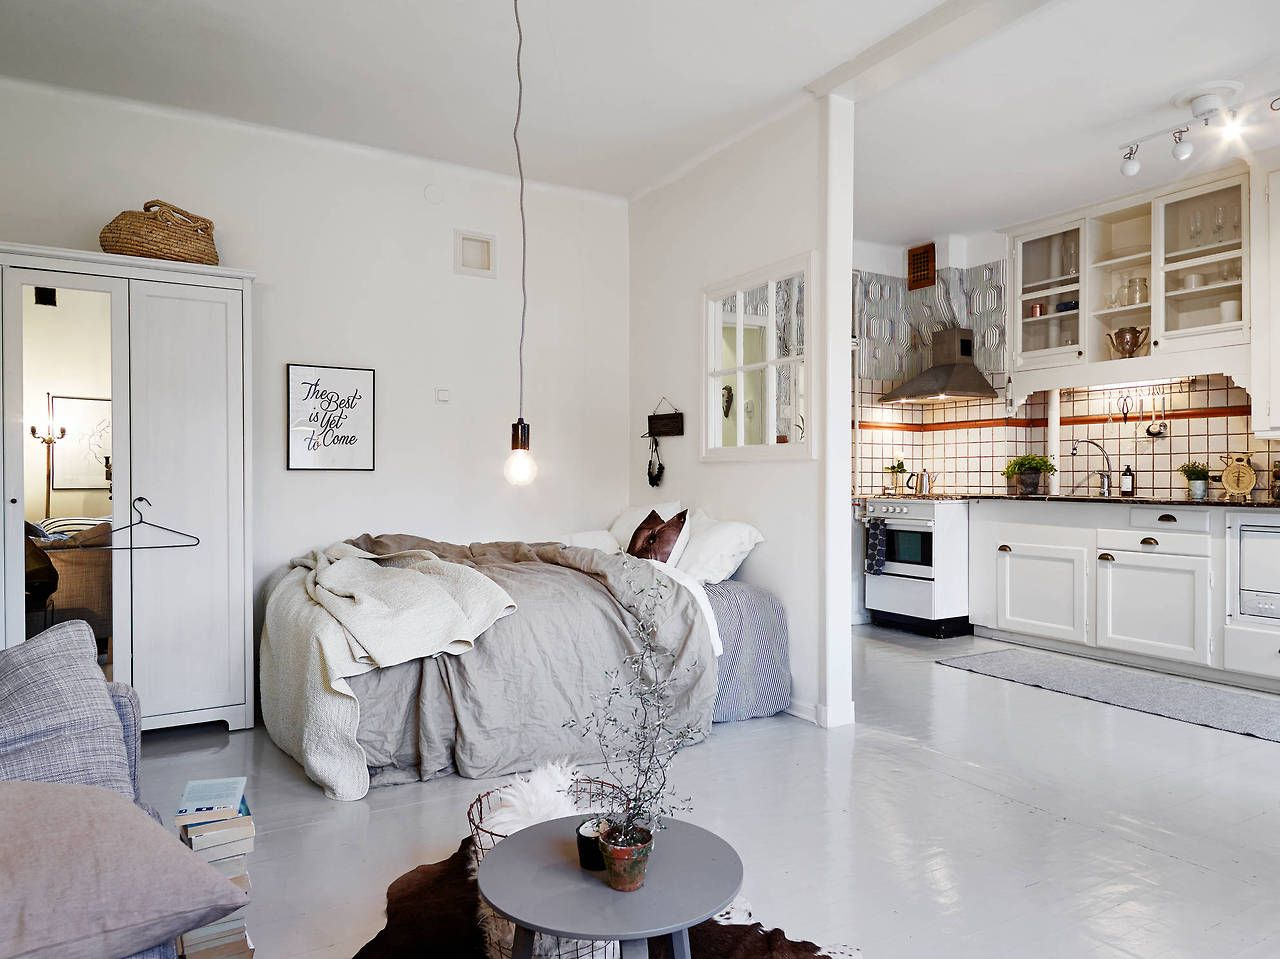 Studio Apartment Decorating Vintage full studio apartment here - modern vintage interior | bed